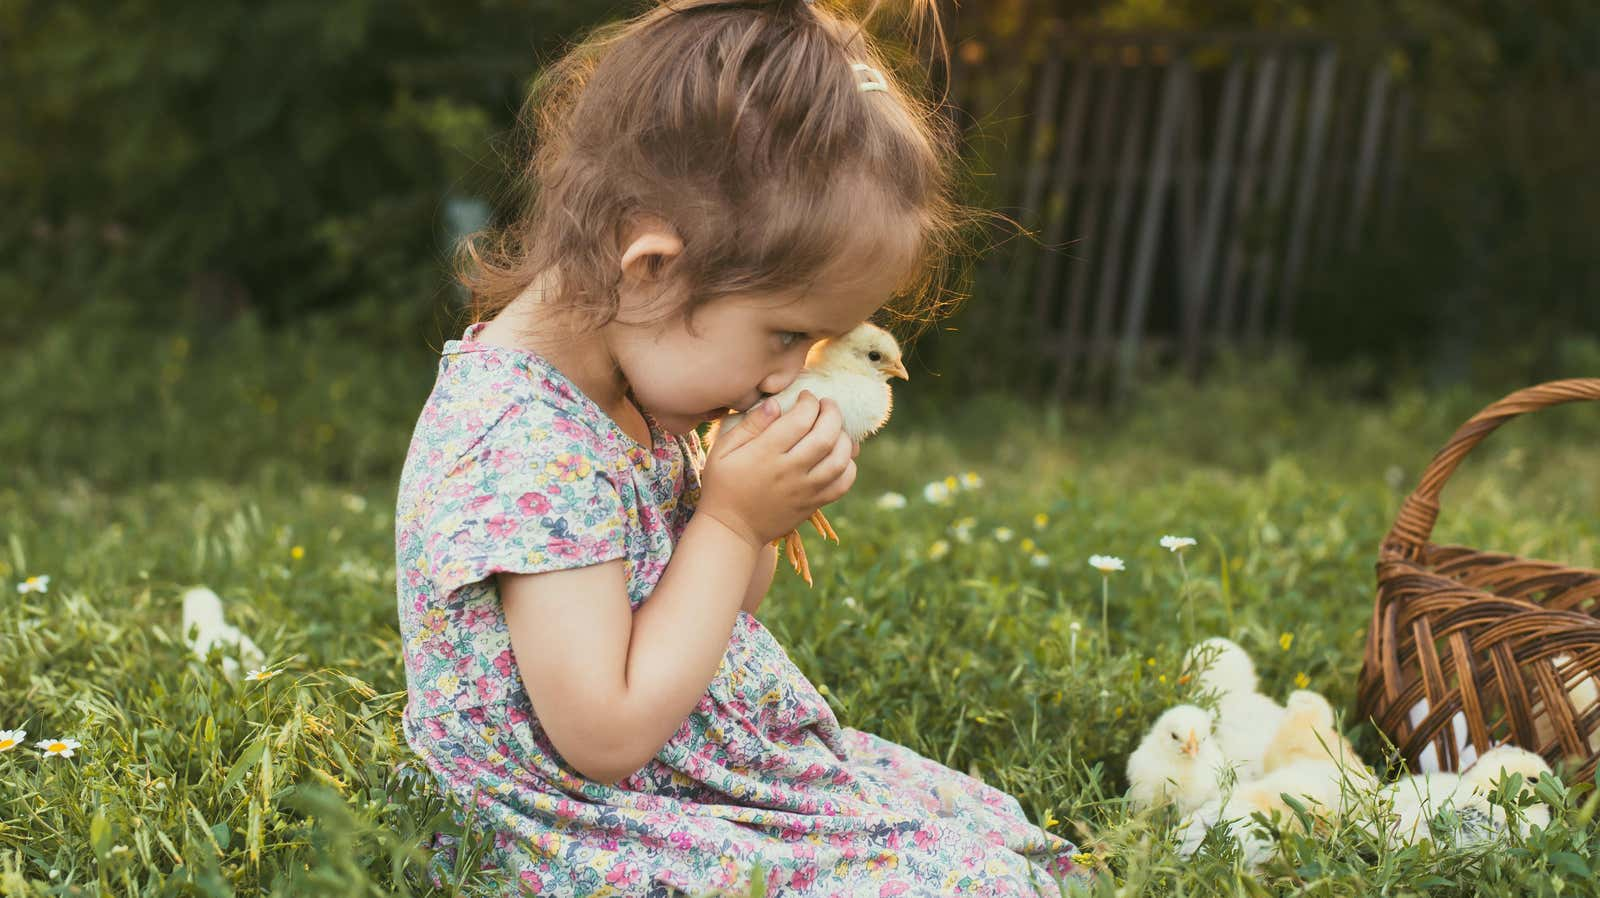 It's Your Mouth, But Please Stop Kissing Poultry, CDC Says